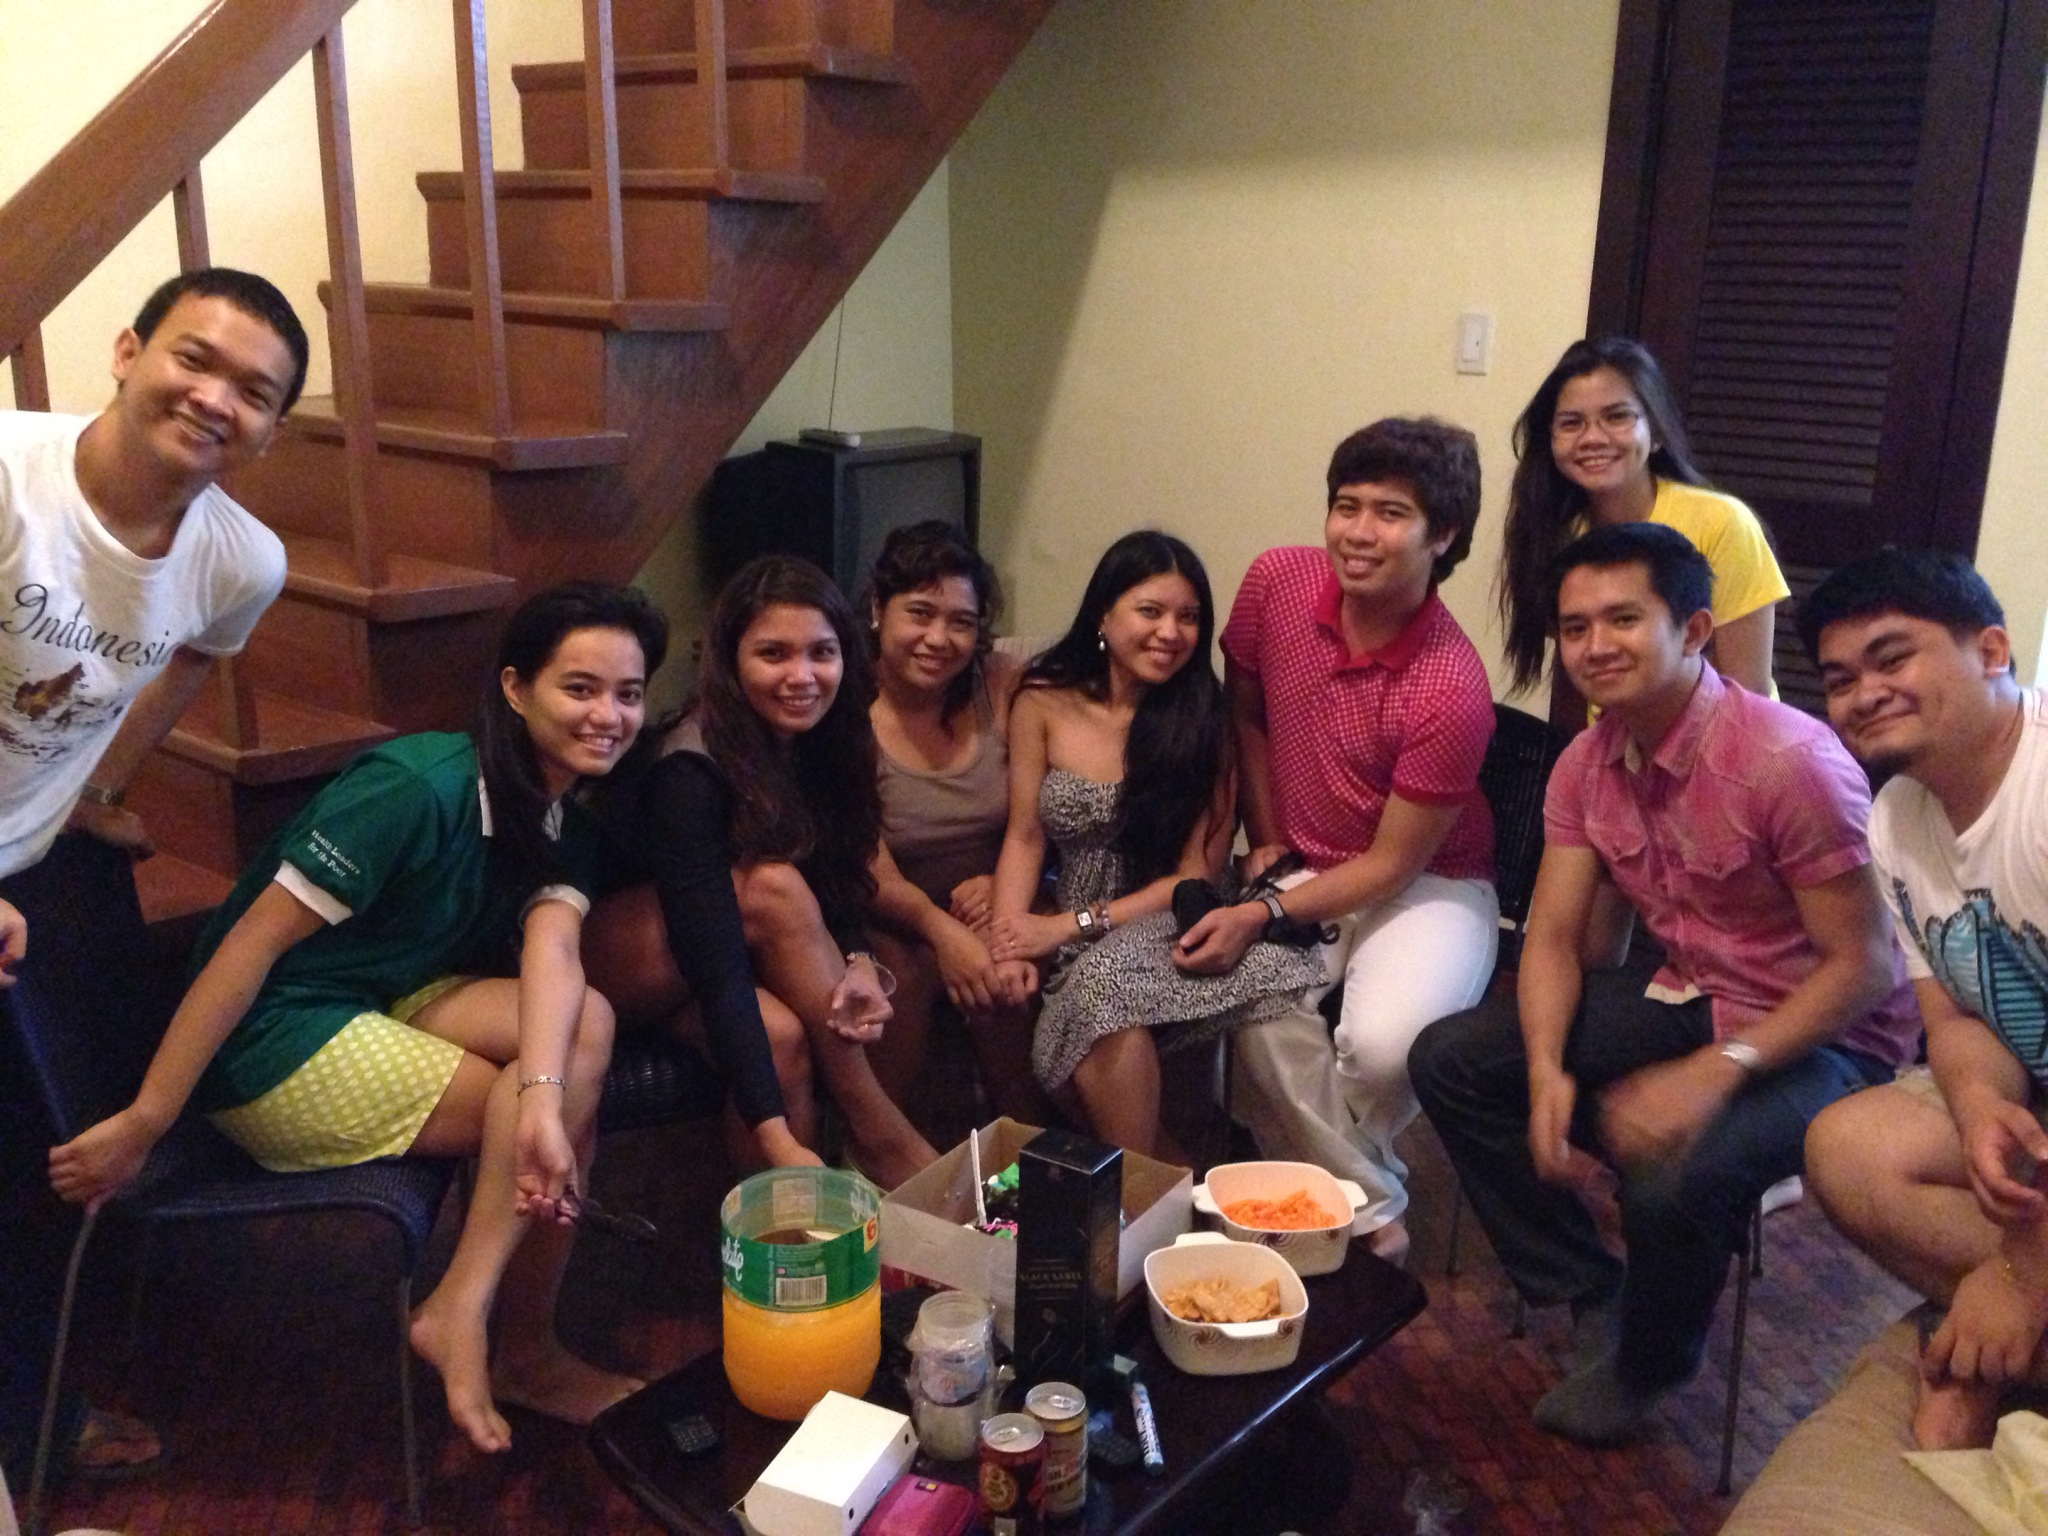 My farewell party with my College friends before I started my backpacking trip...